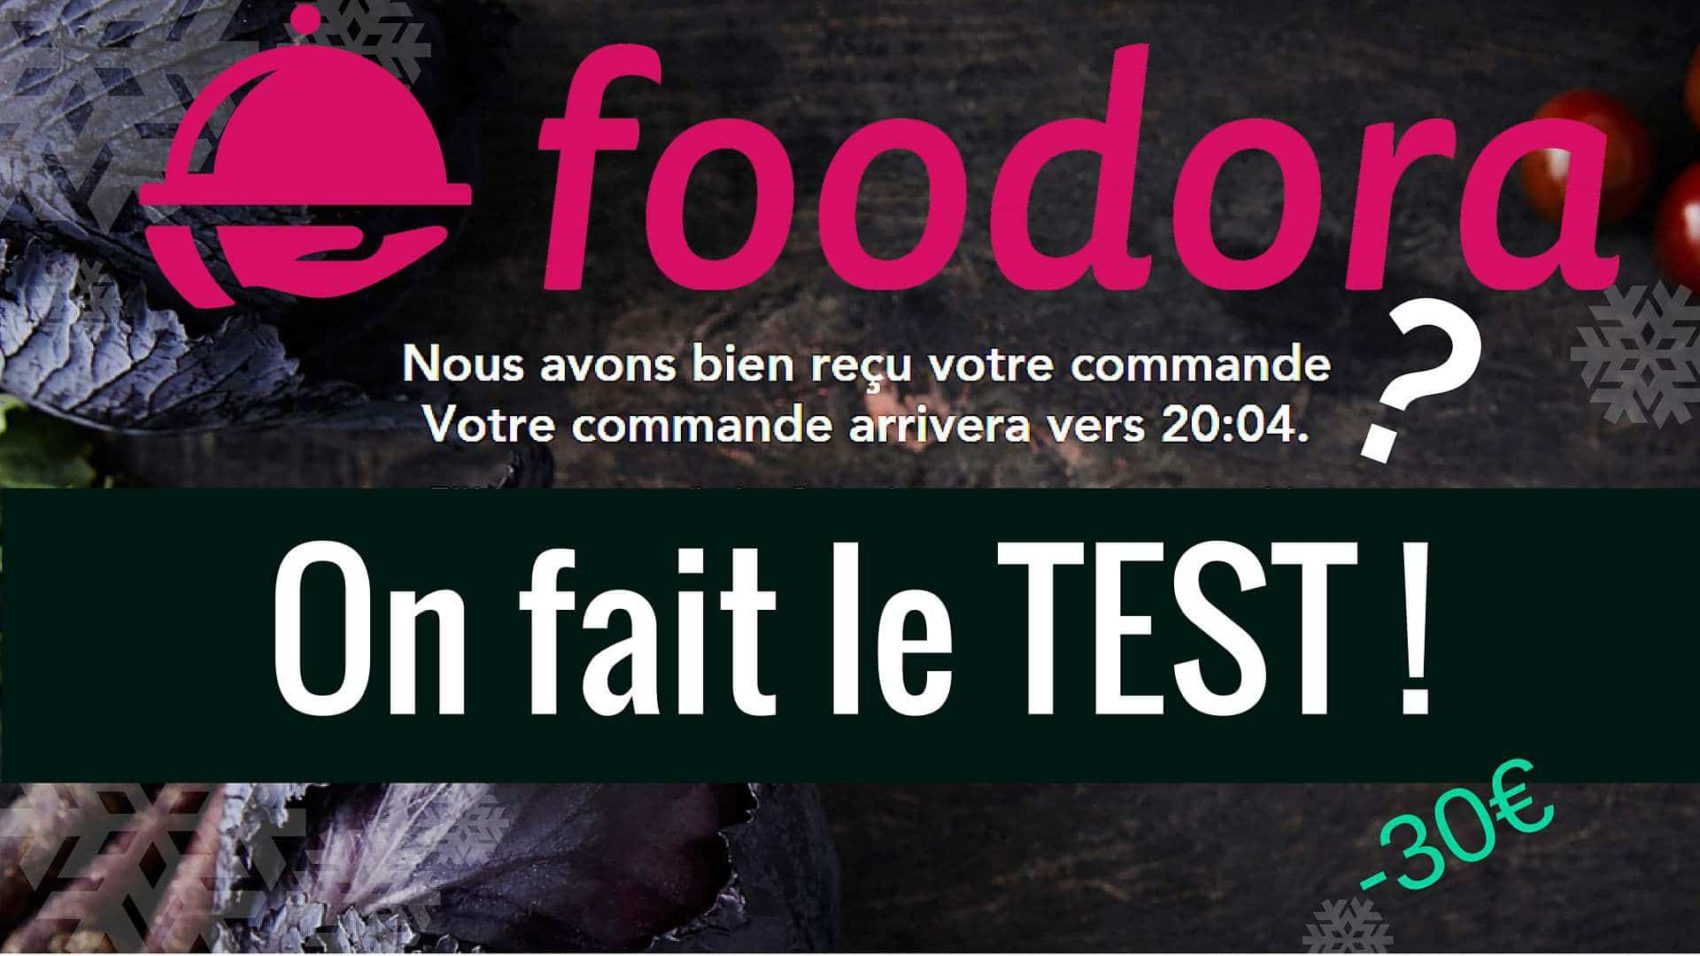 Foodora on test et donne des codes promos